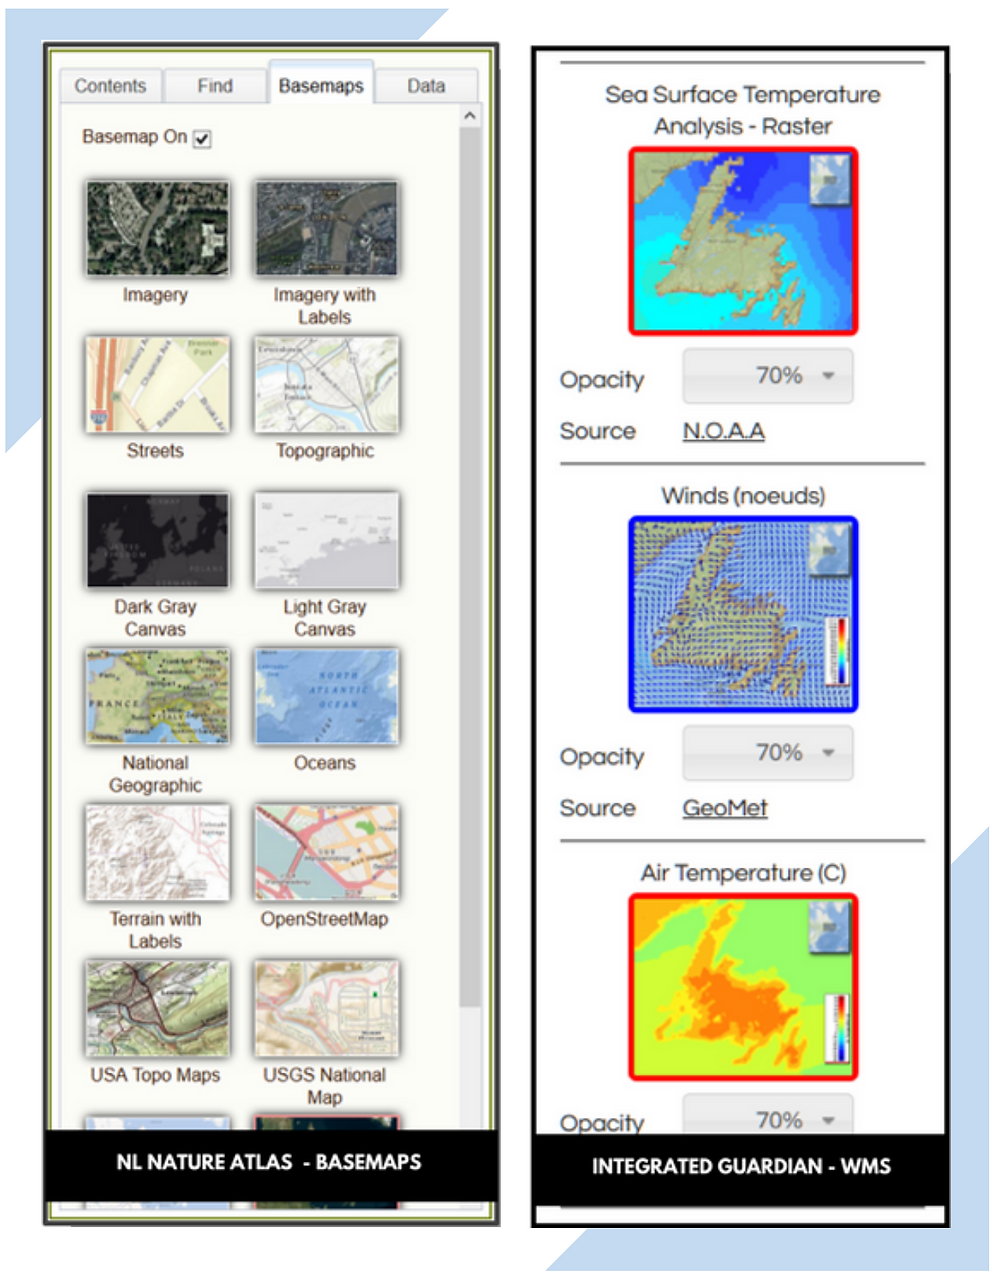 Blog post series on common features and elements in Geographic Information System GIS web applications and web maps, including the importance of including a comparison of third-party and supplemental data like WMS layers that can be included in a mapping application.